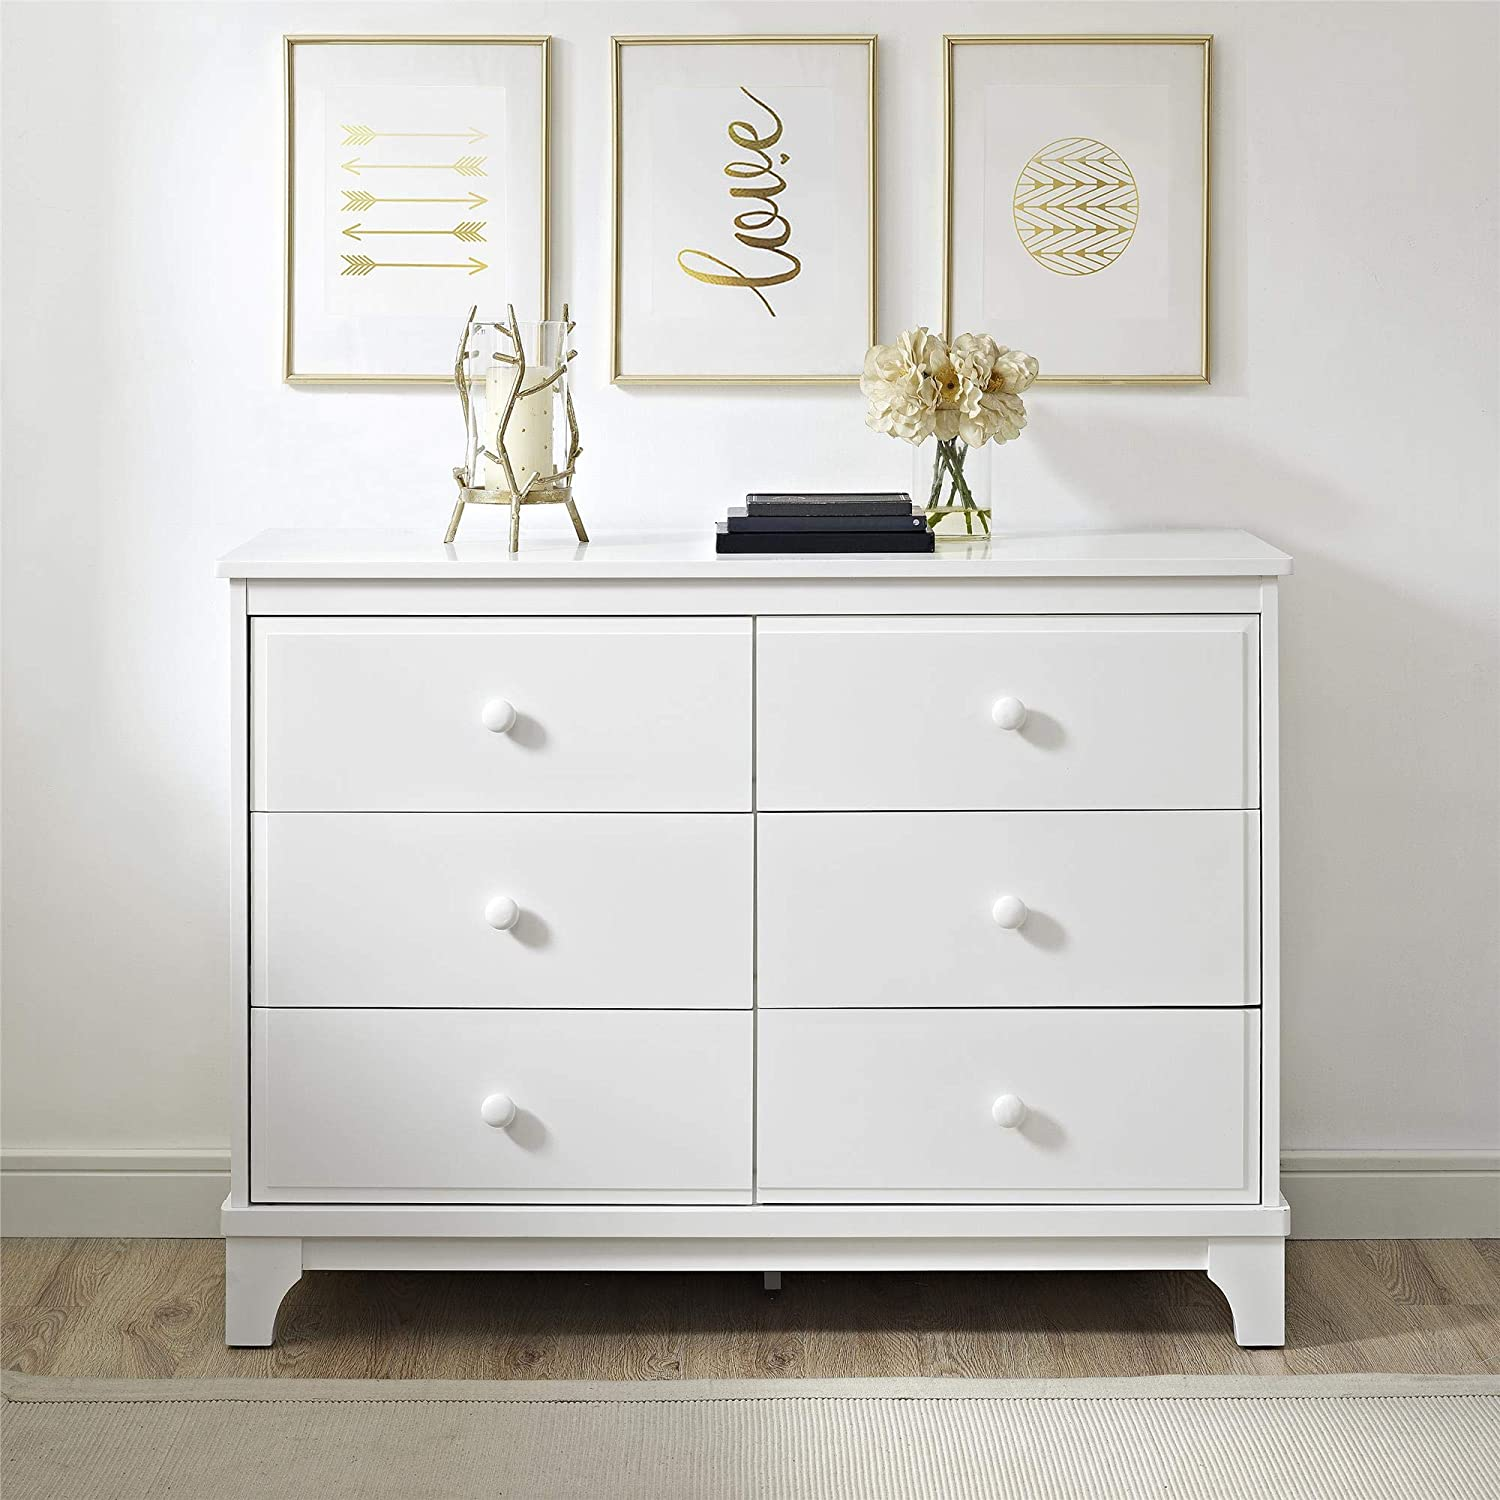 Baby Relax Baby Relax Cricket 6 Drawer Dresser, White, White